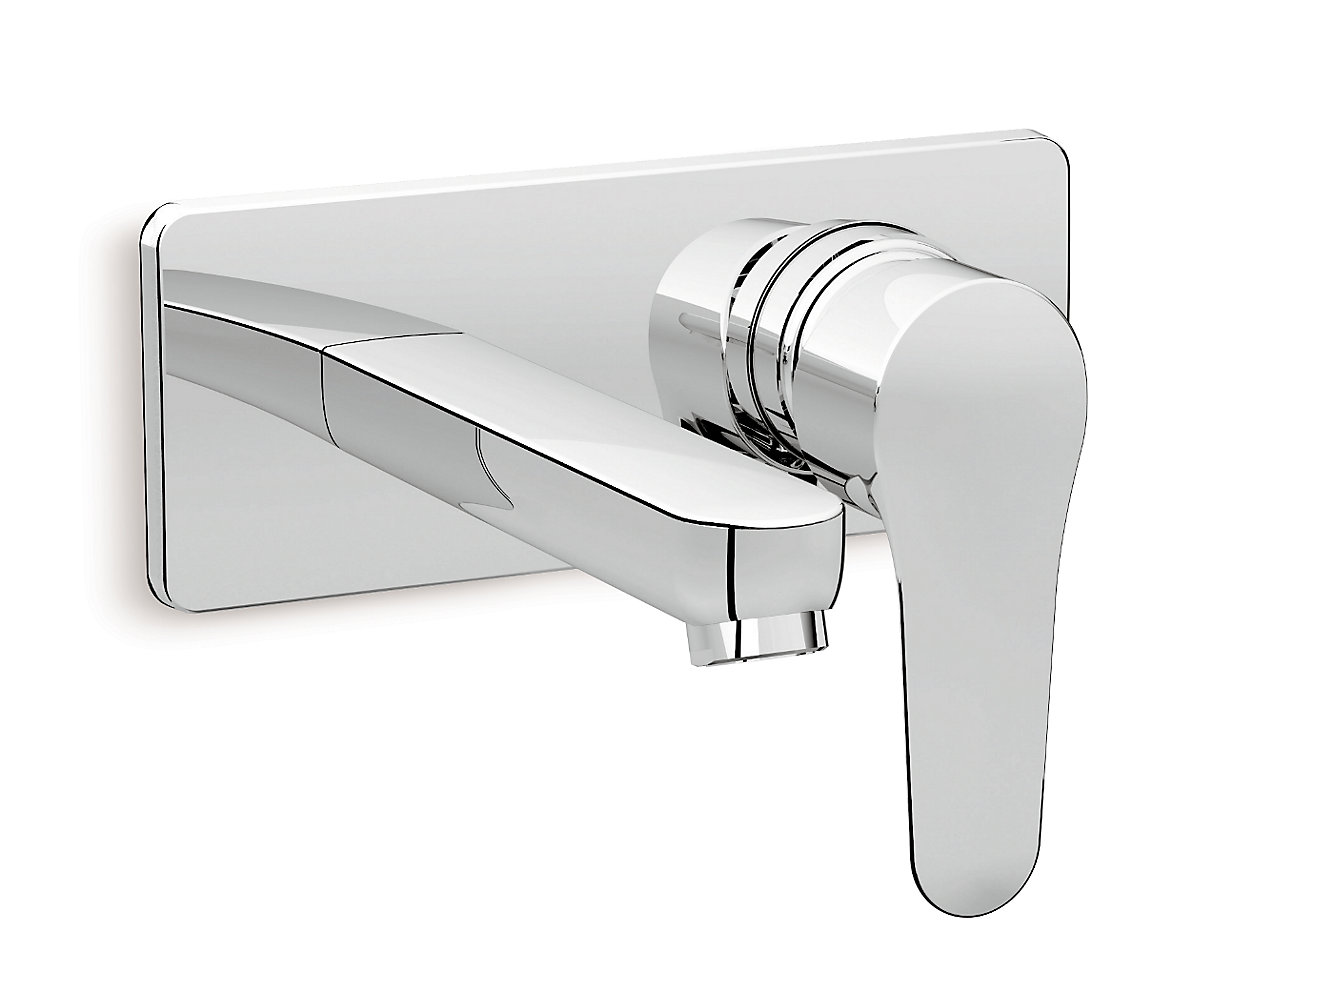 July Wall-mount lavatory faucet trim in polished chrome | K-5680IN ...